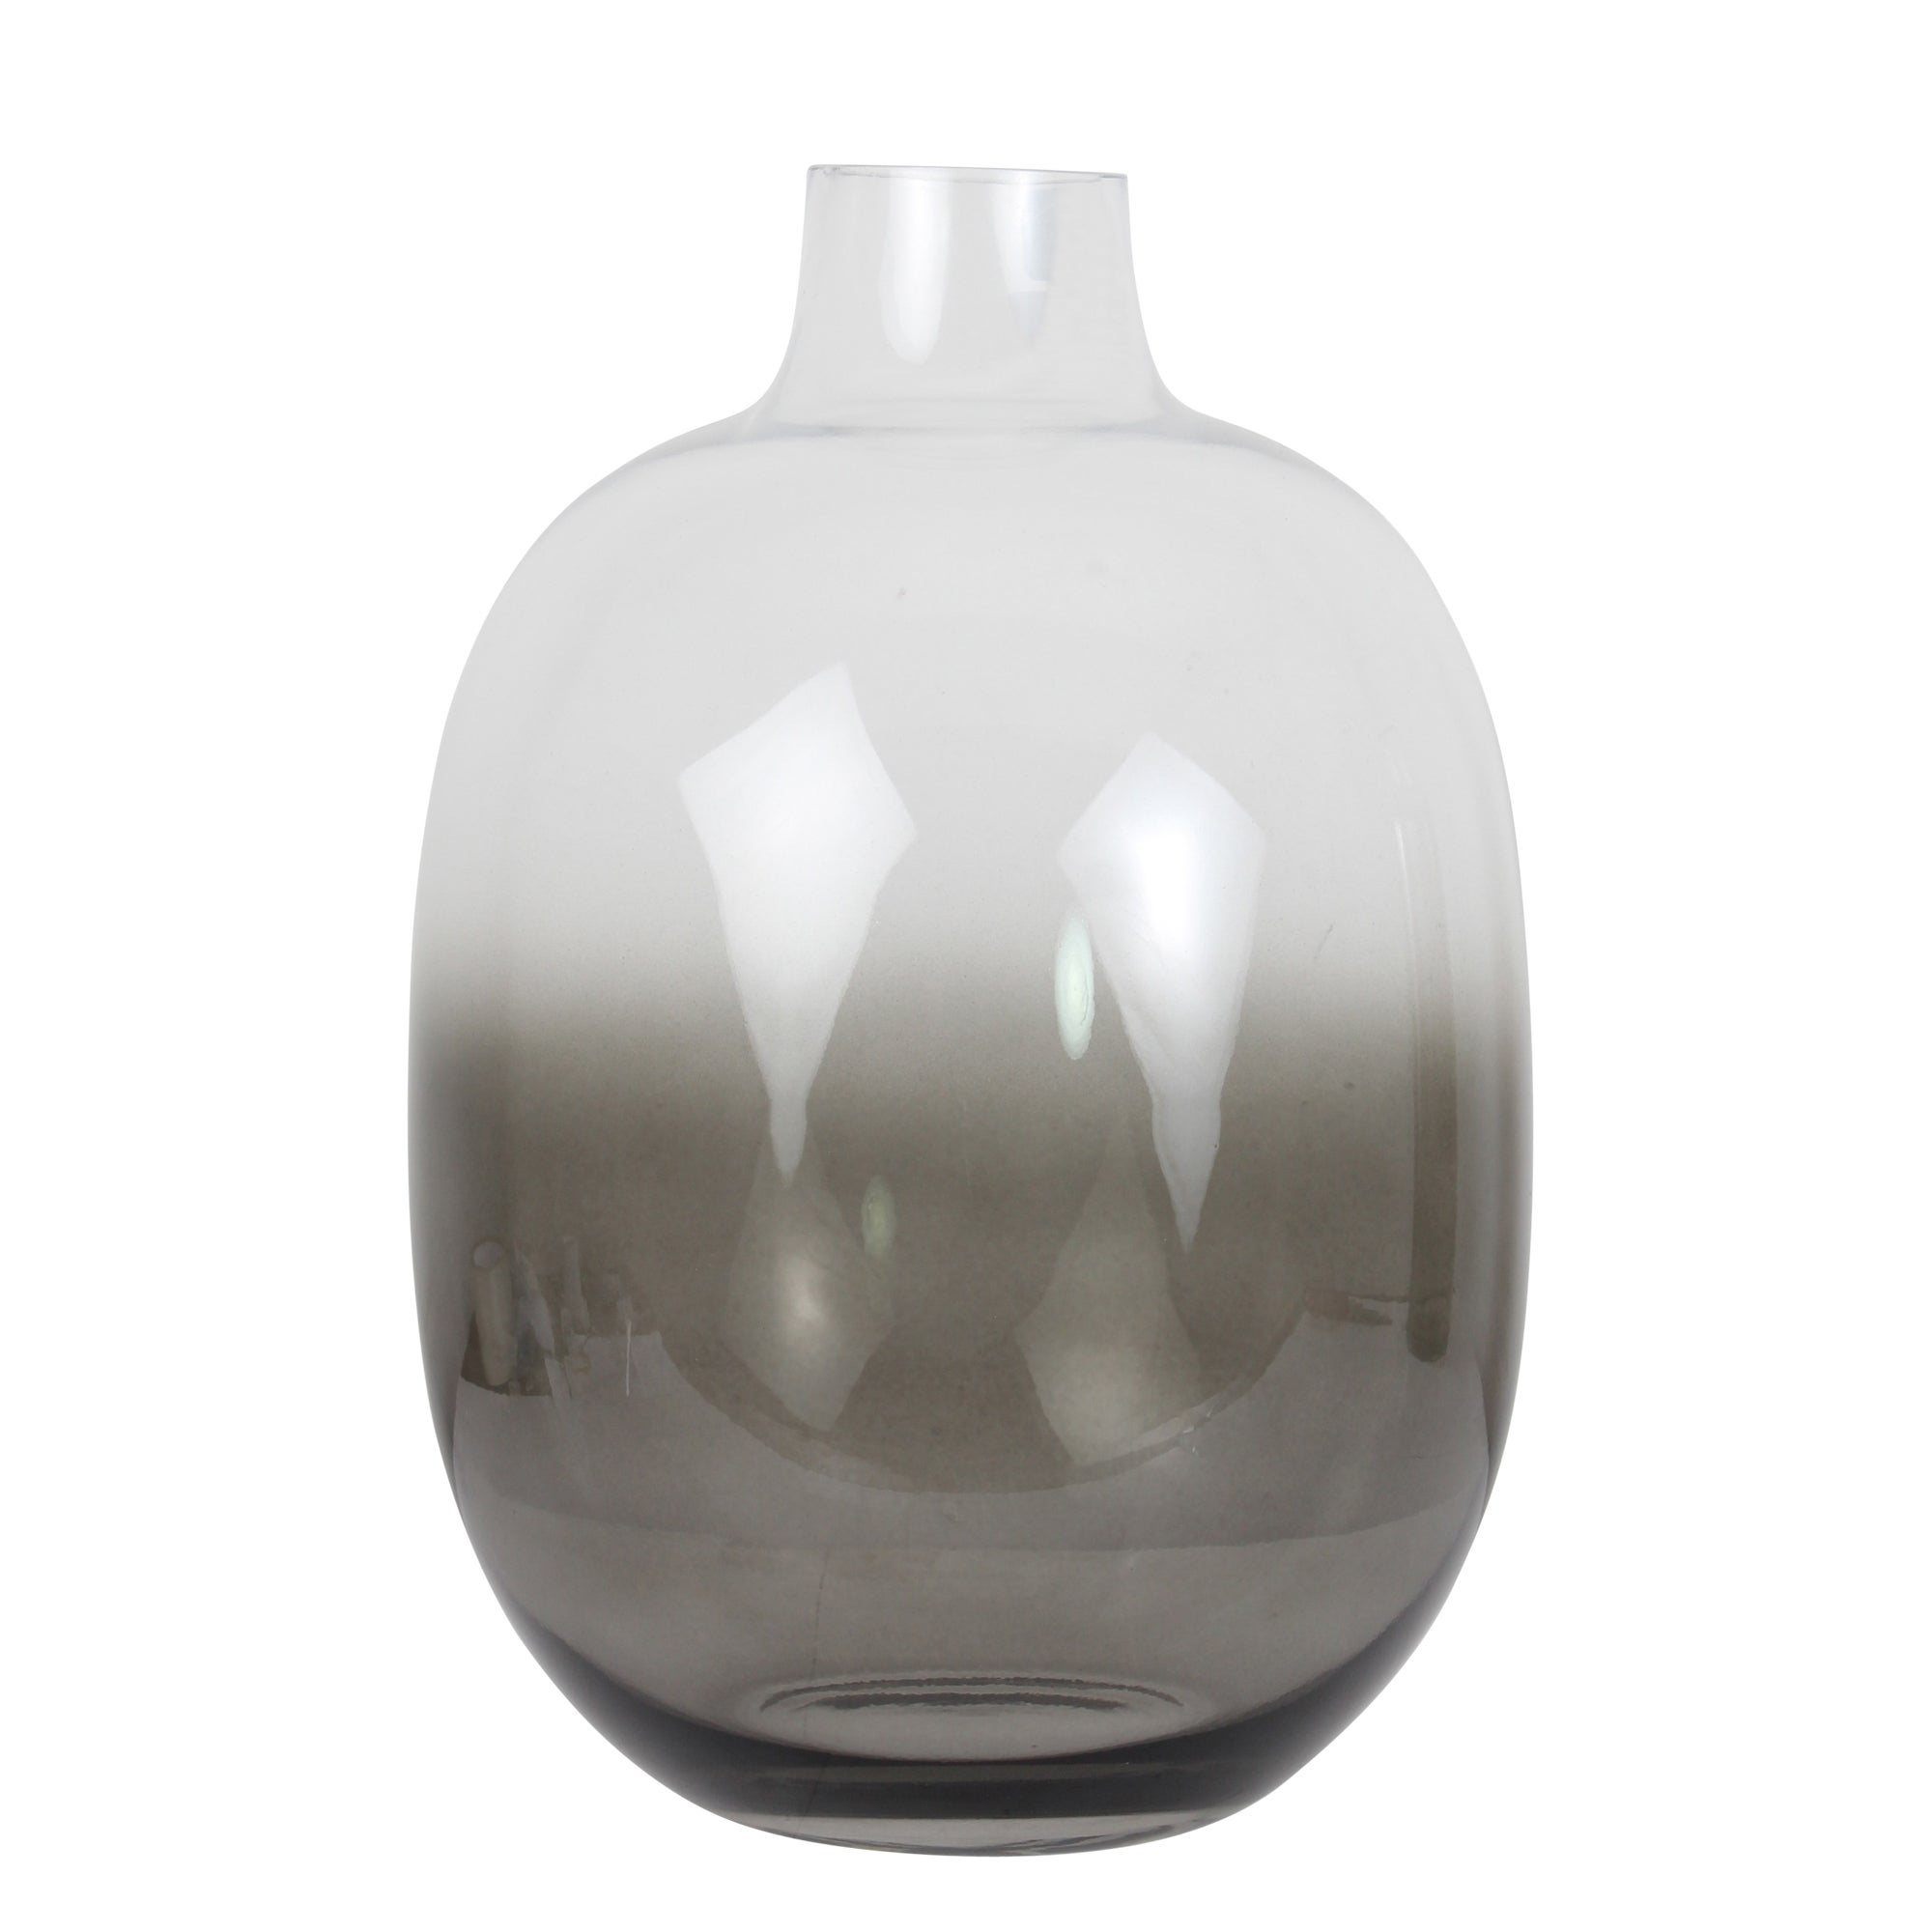 Photo of Hotel ombre curved grey vase grey